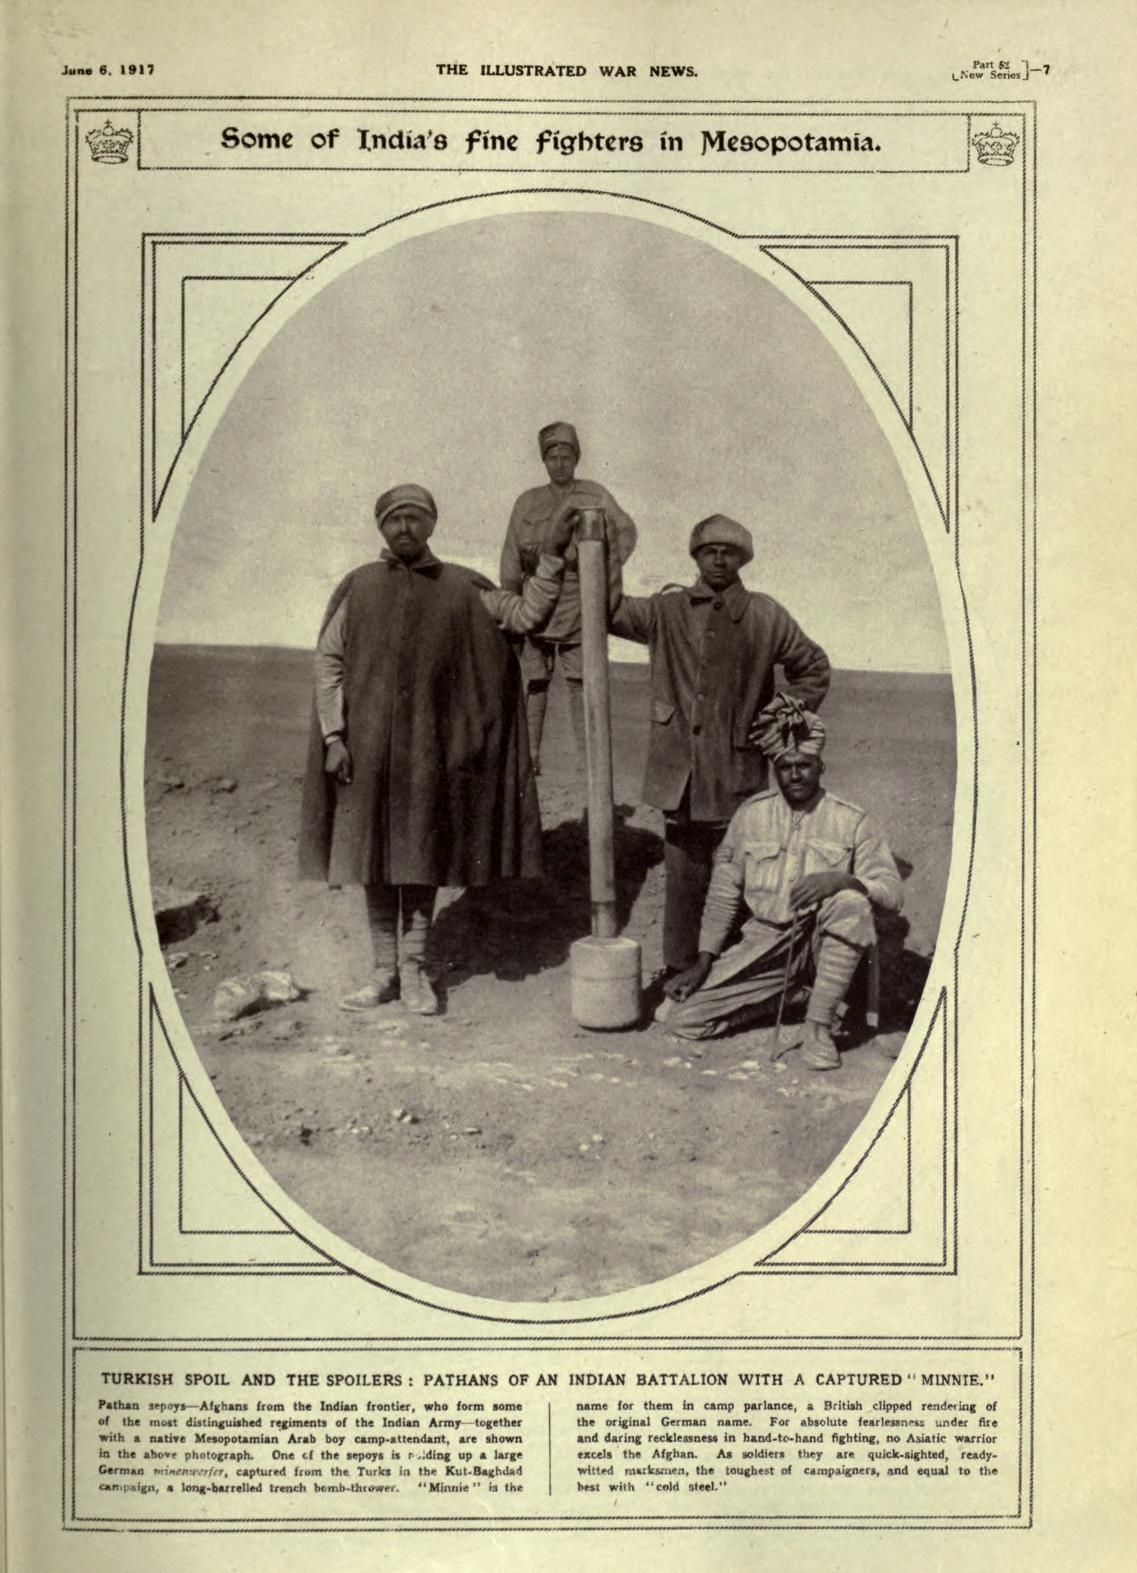 "The Illustrated war news, June 6, 1917. "" Some of India's fine fighters in Mesopotamia. Turkish spoil and the spoilers: Pathans of an Indian battalion with a captured "" Minnie"" - German minenwerfer, captured from the Turks in the Kut-Baghdad campaign."""